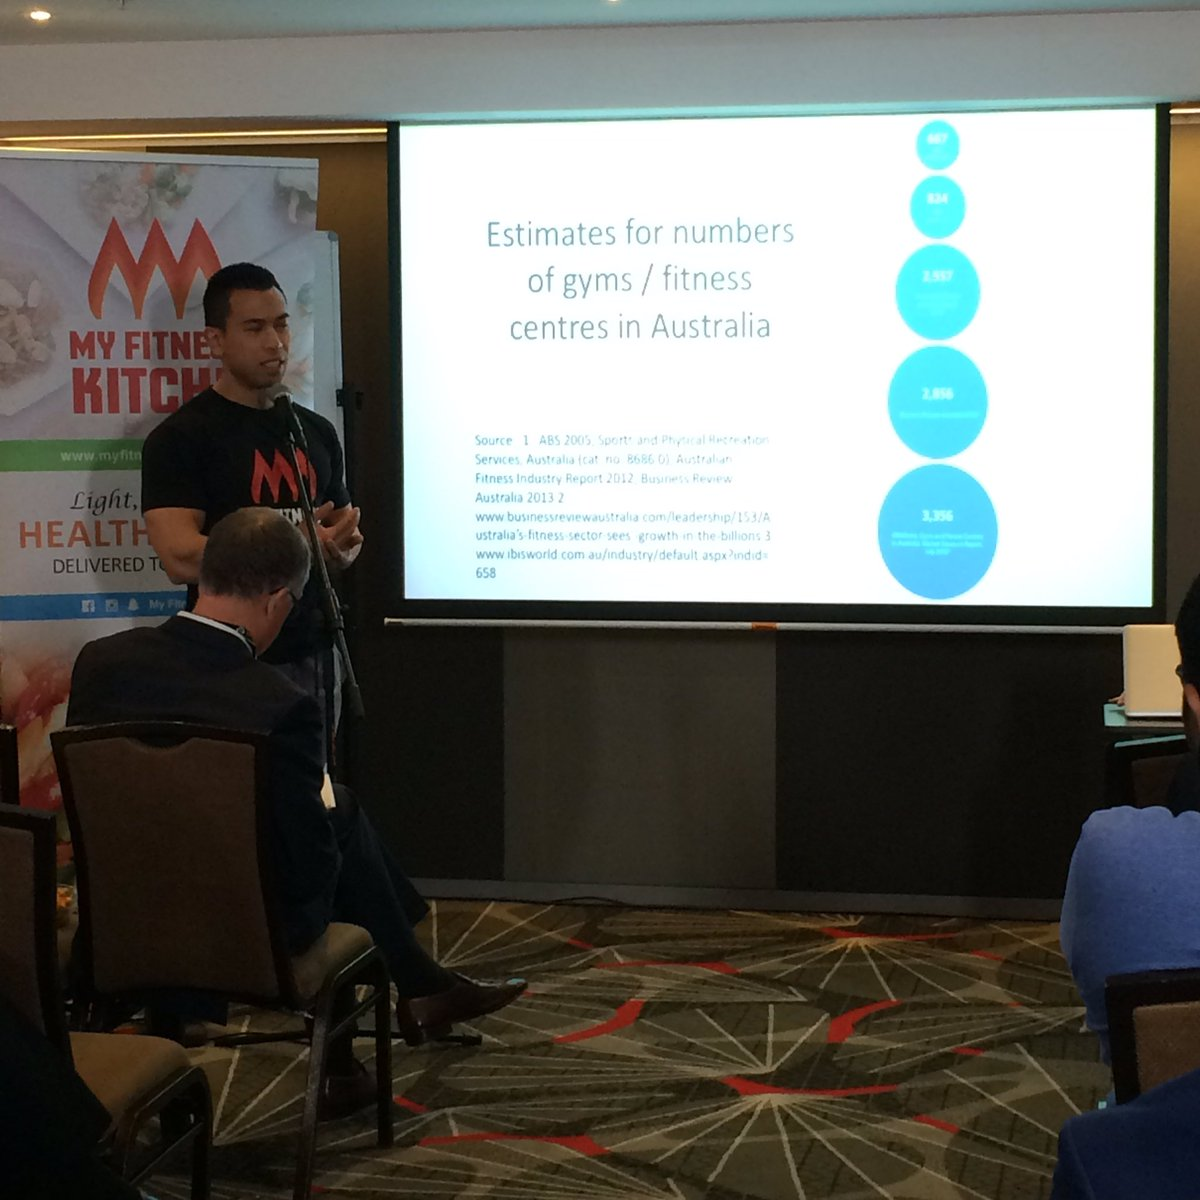 Our very first Jumpstart competitiors are Jonathan and Kimberly from @MyFitnessKitchn  #wssbe #expo #smallbiz<br>http://pic.twitter.com/s8bd6l1jev